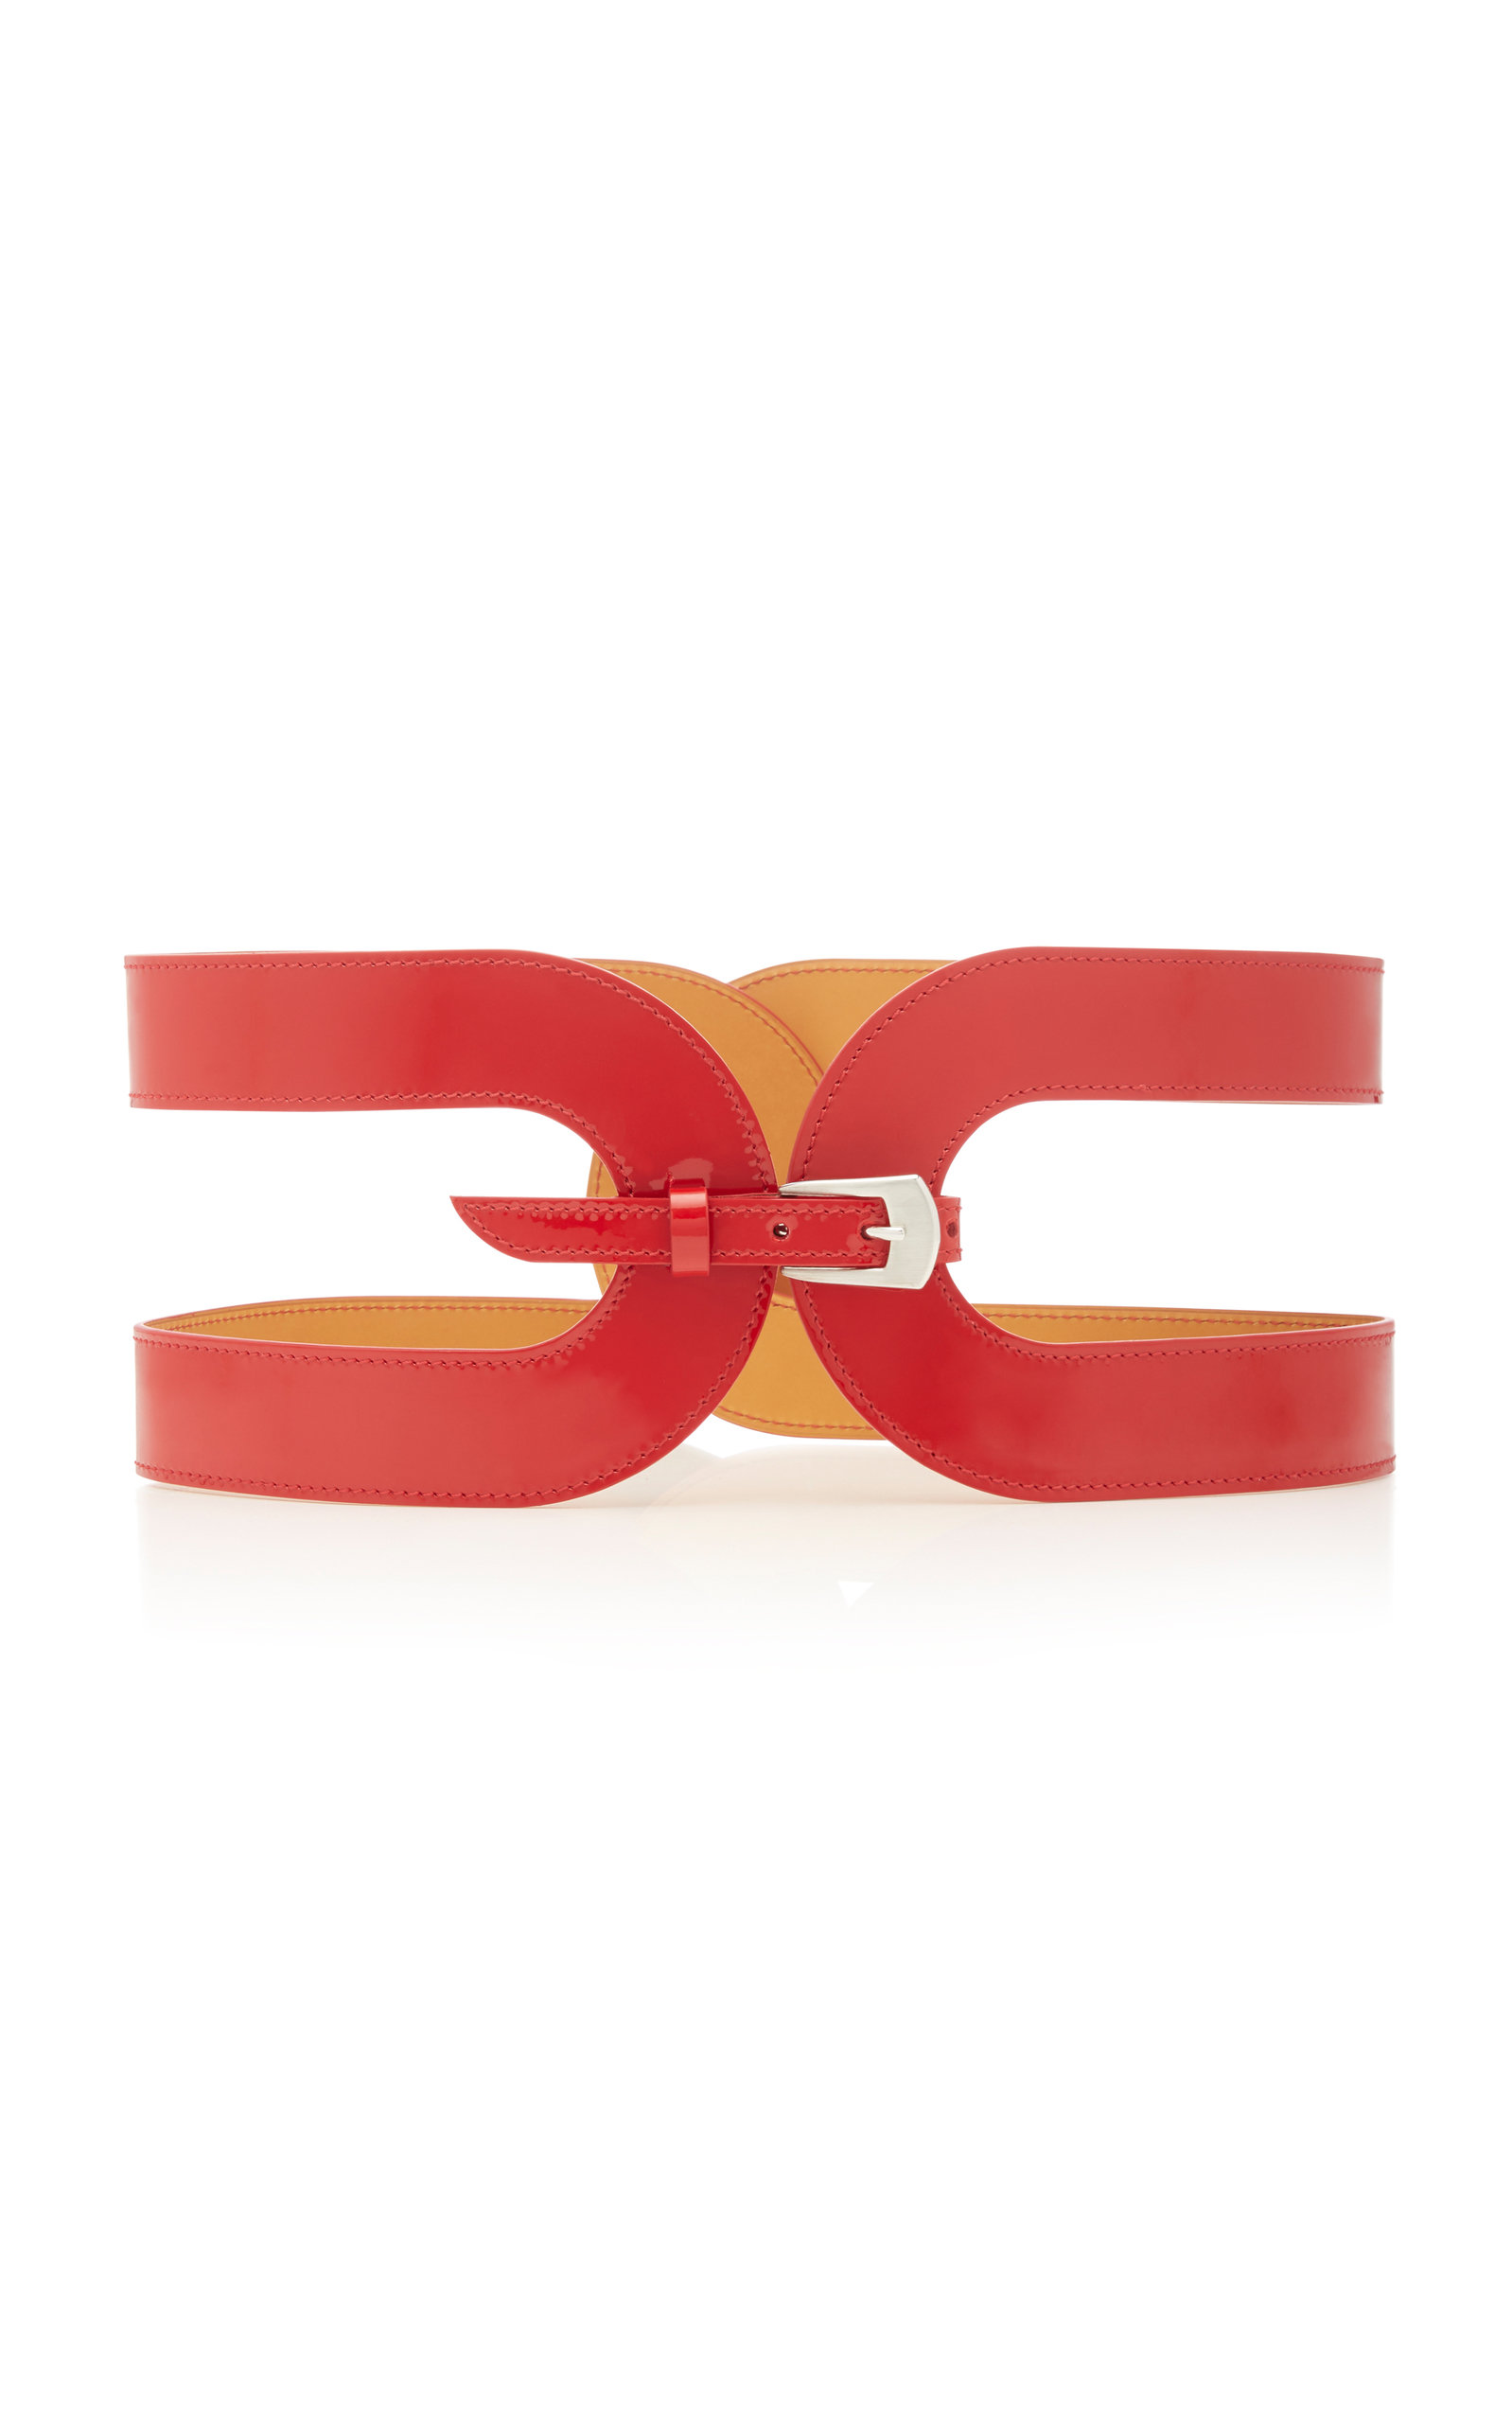 MAISON VAINCOURT Cage Leather Belt in Red